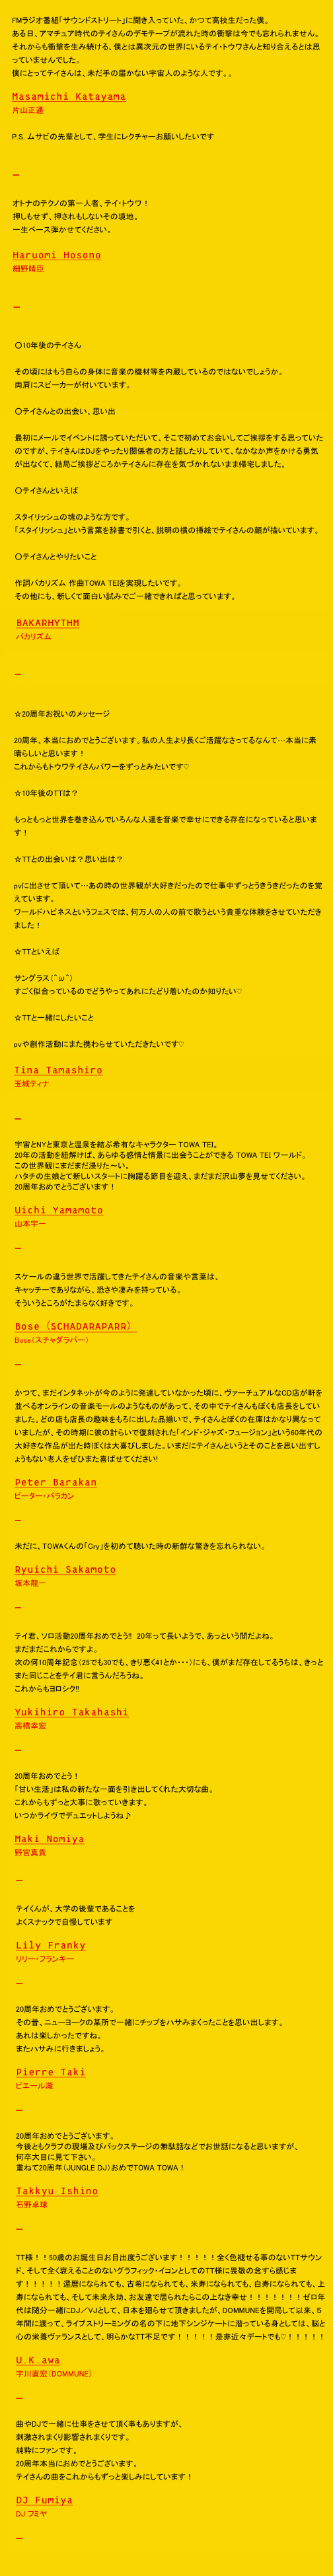 TOWA TEI_20th_1001_comments20141125.jpg